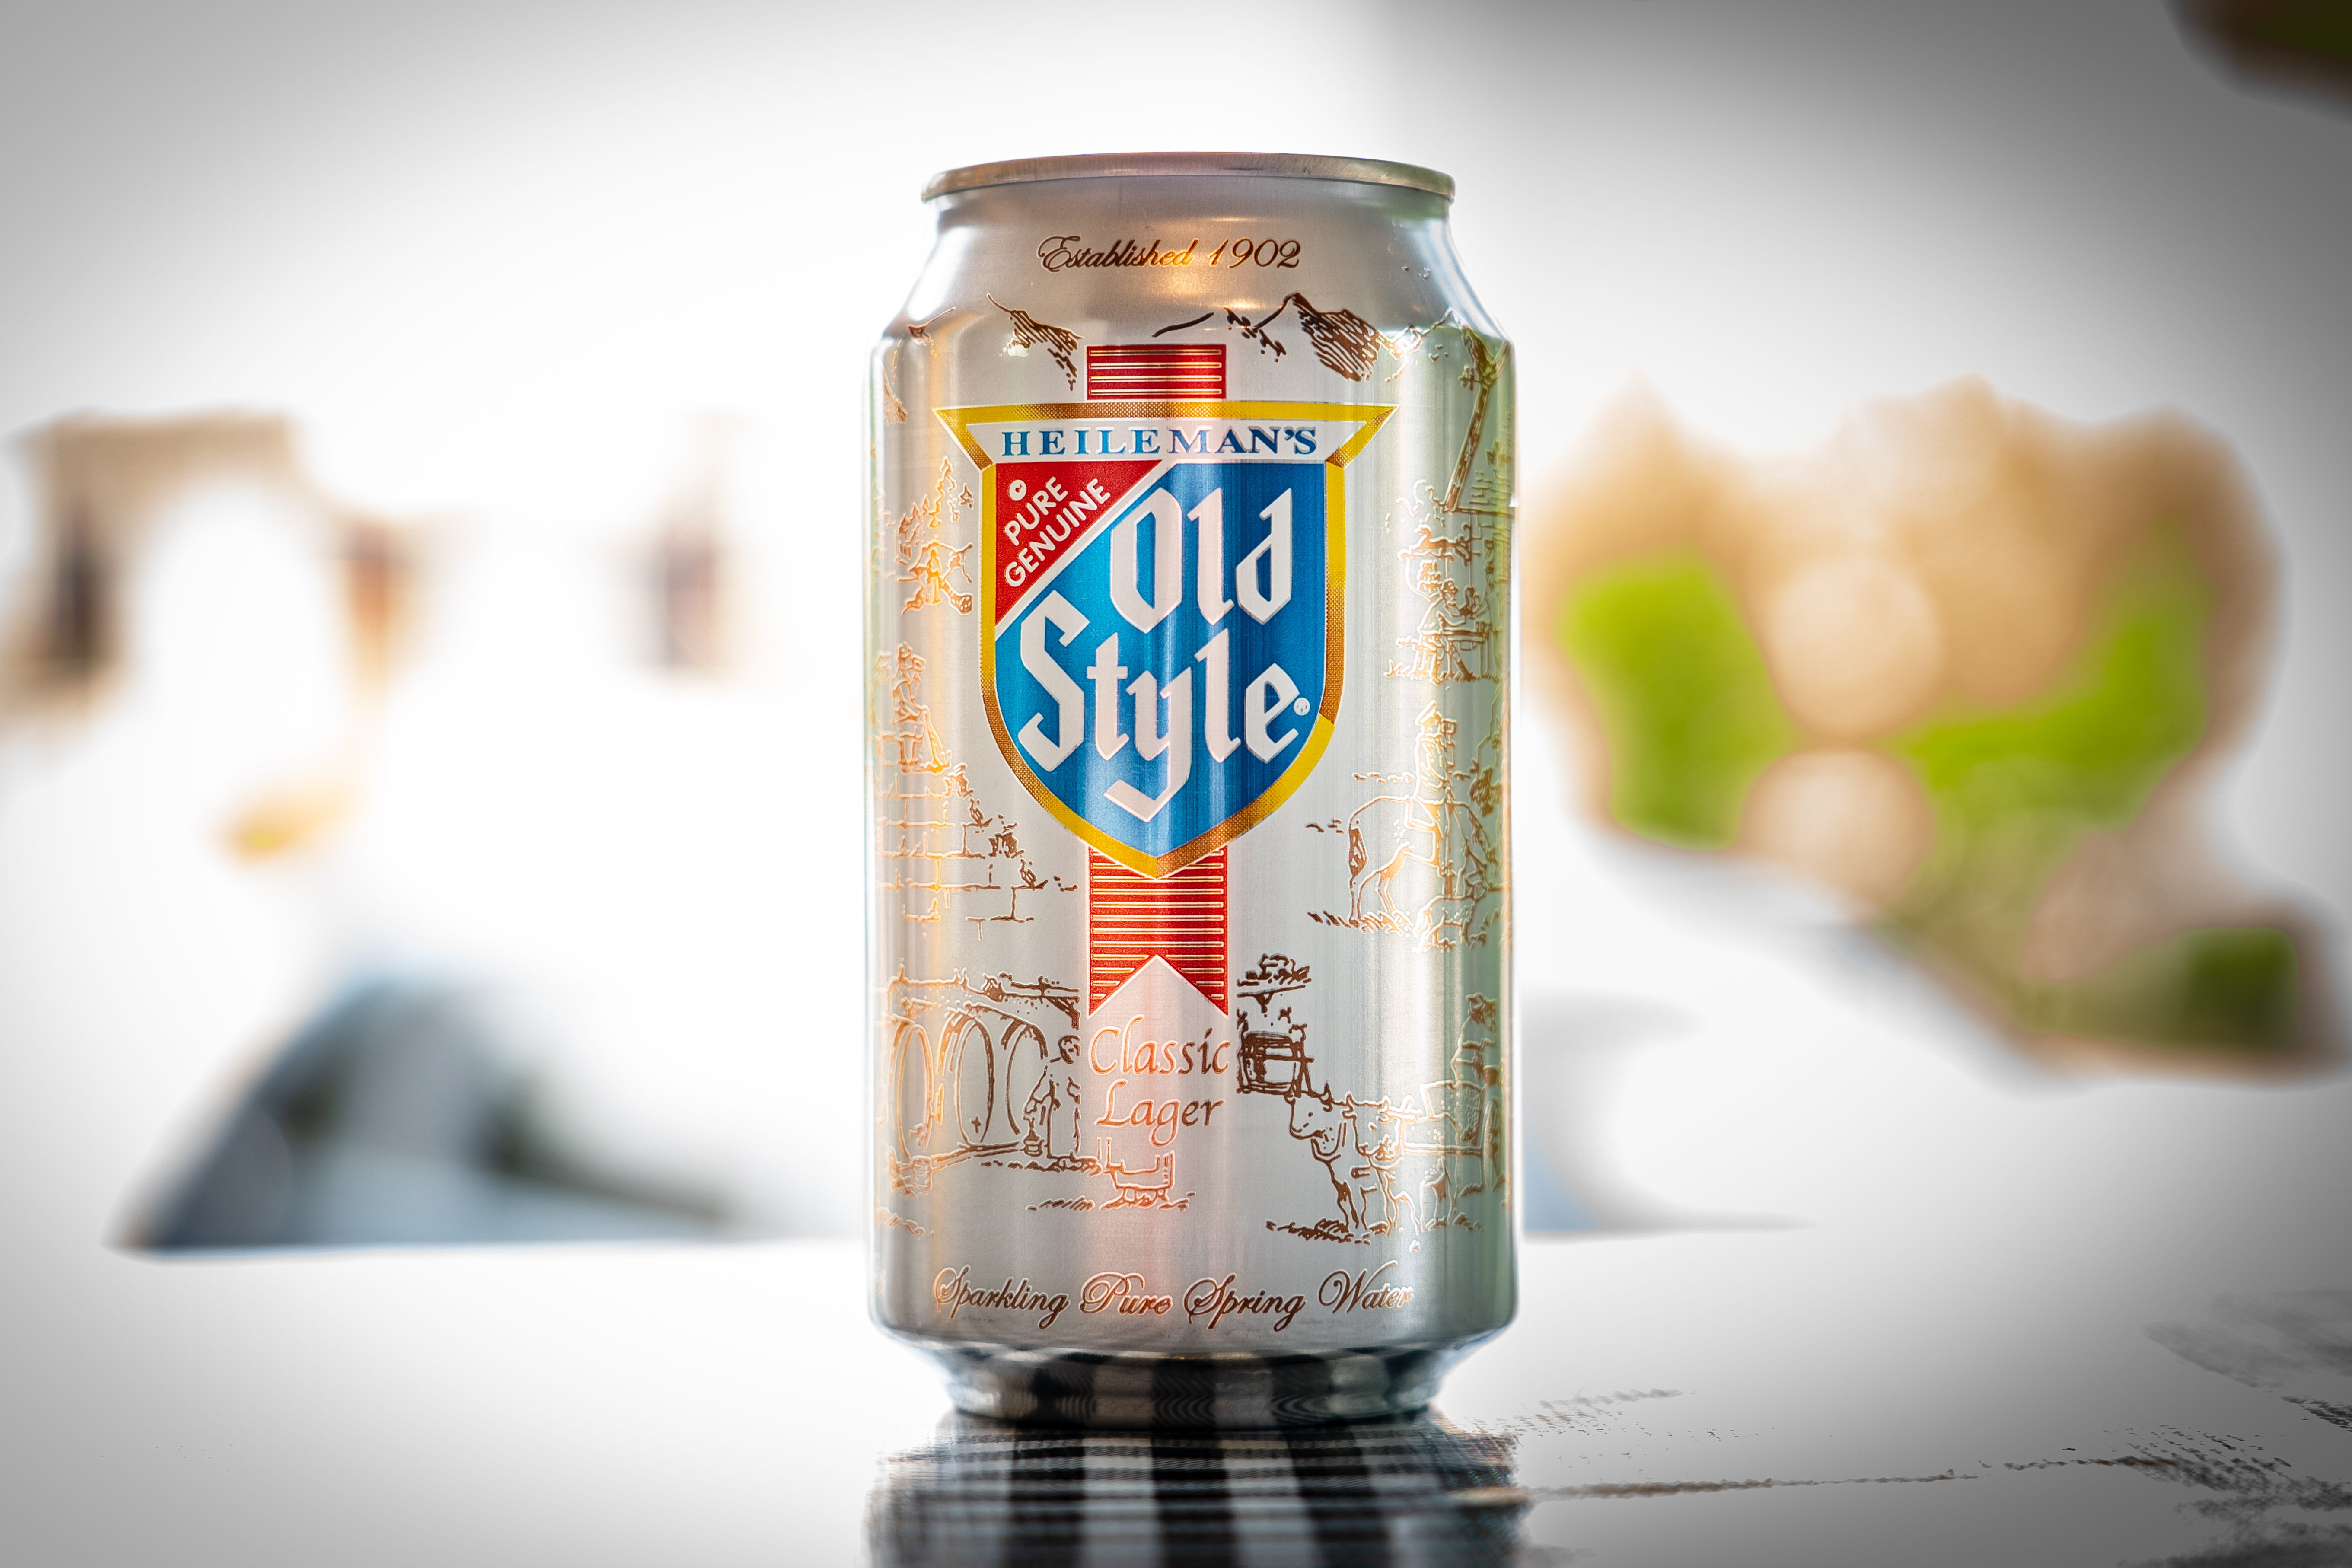 Old Style beer